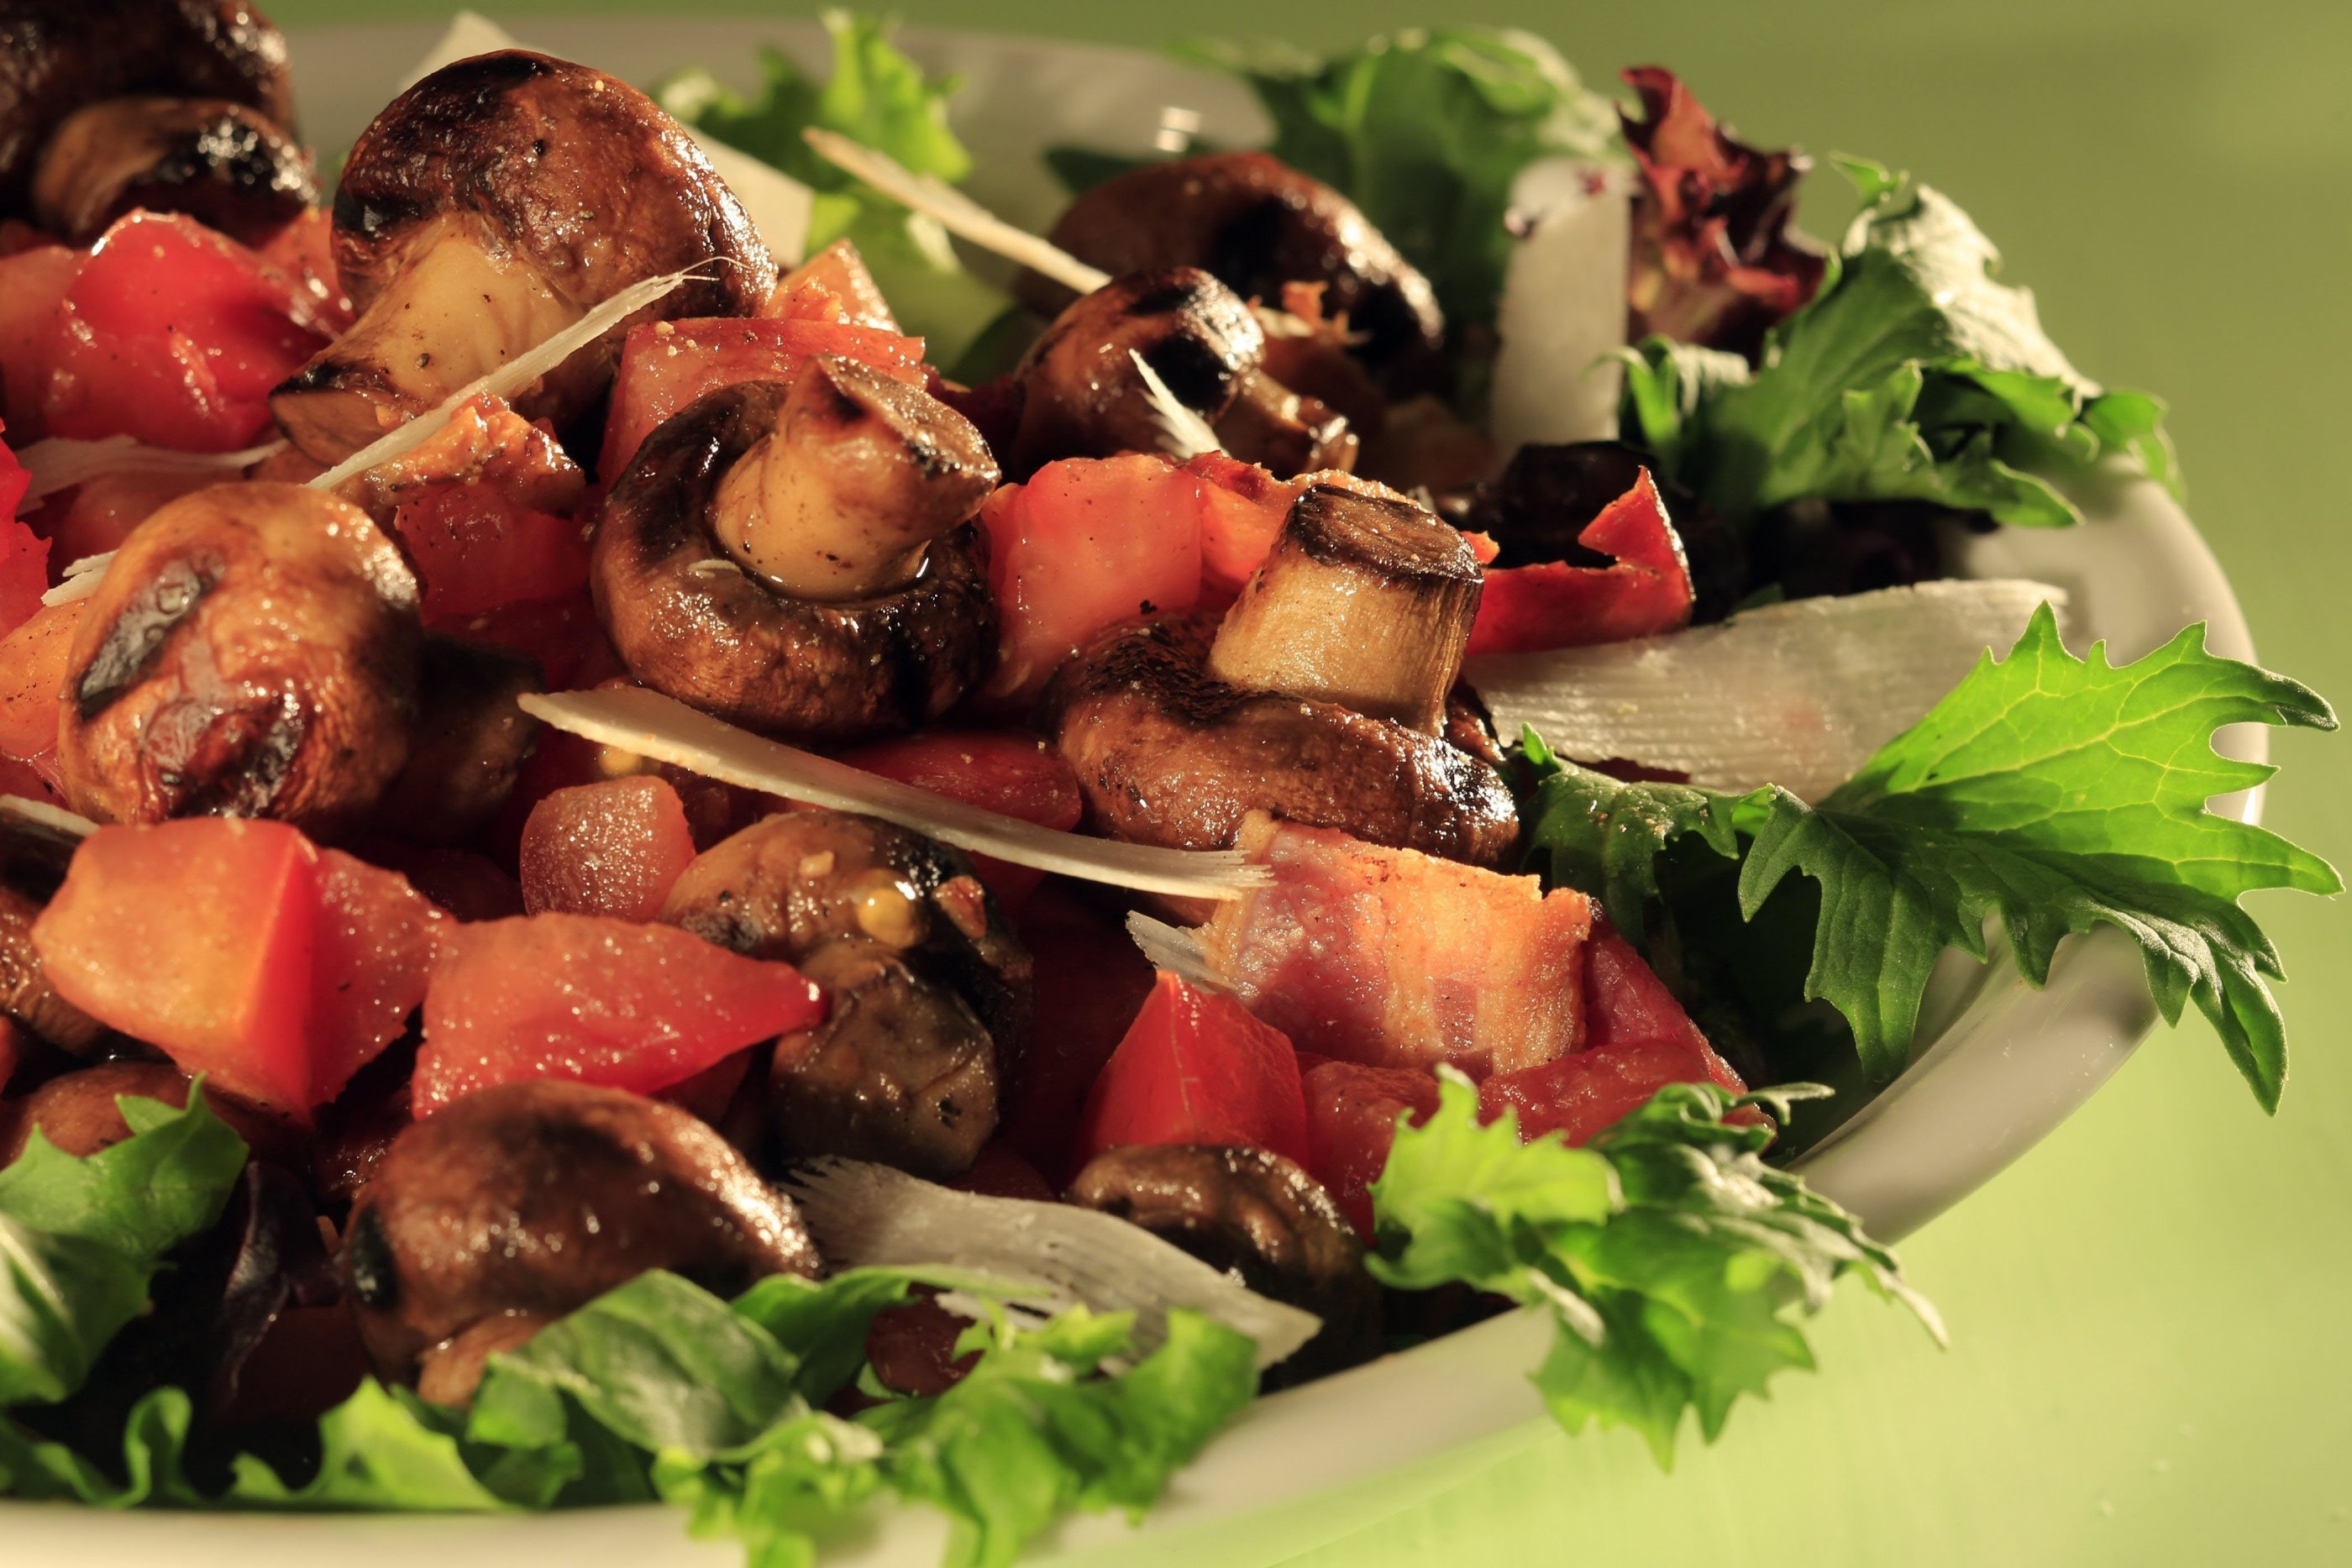 Recipes using foods naturally laden with glutamate, include this dish of bacon, mushrooms and tomatoes served on a bed of greens.